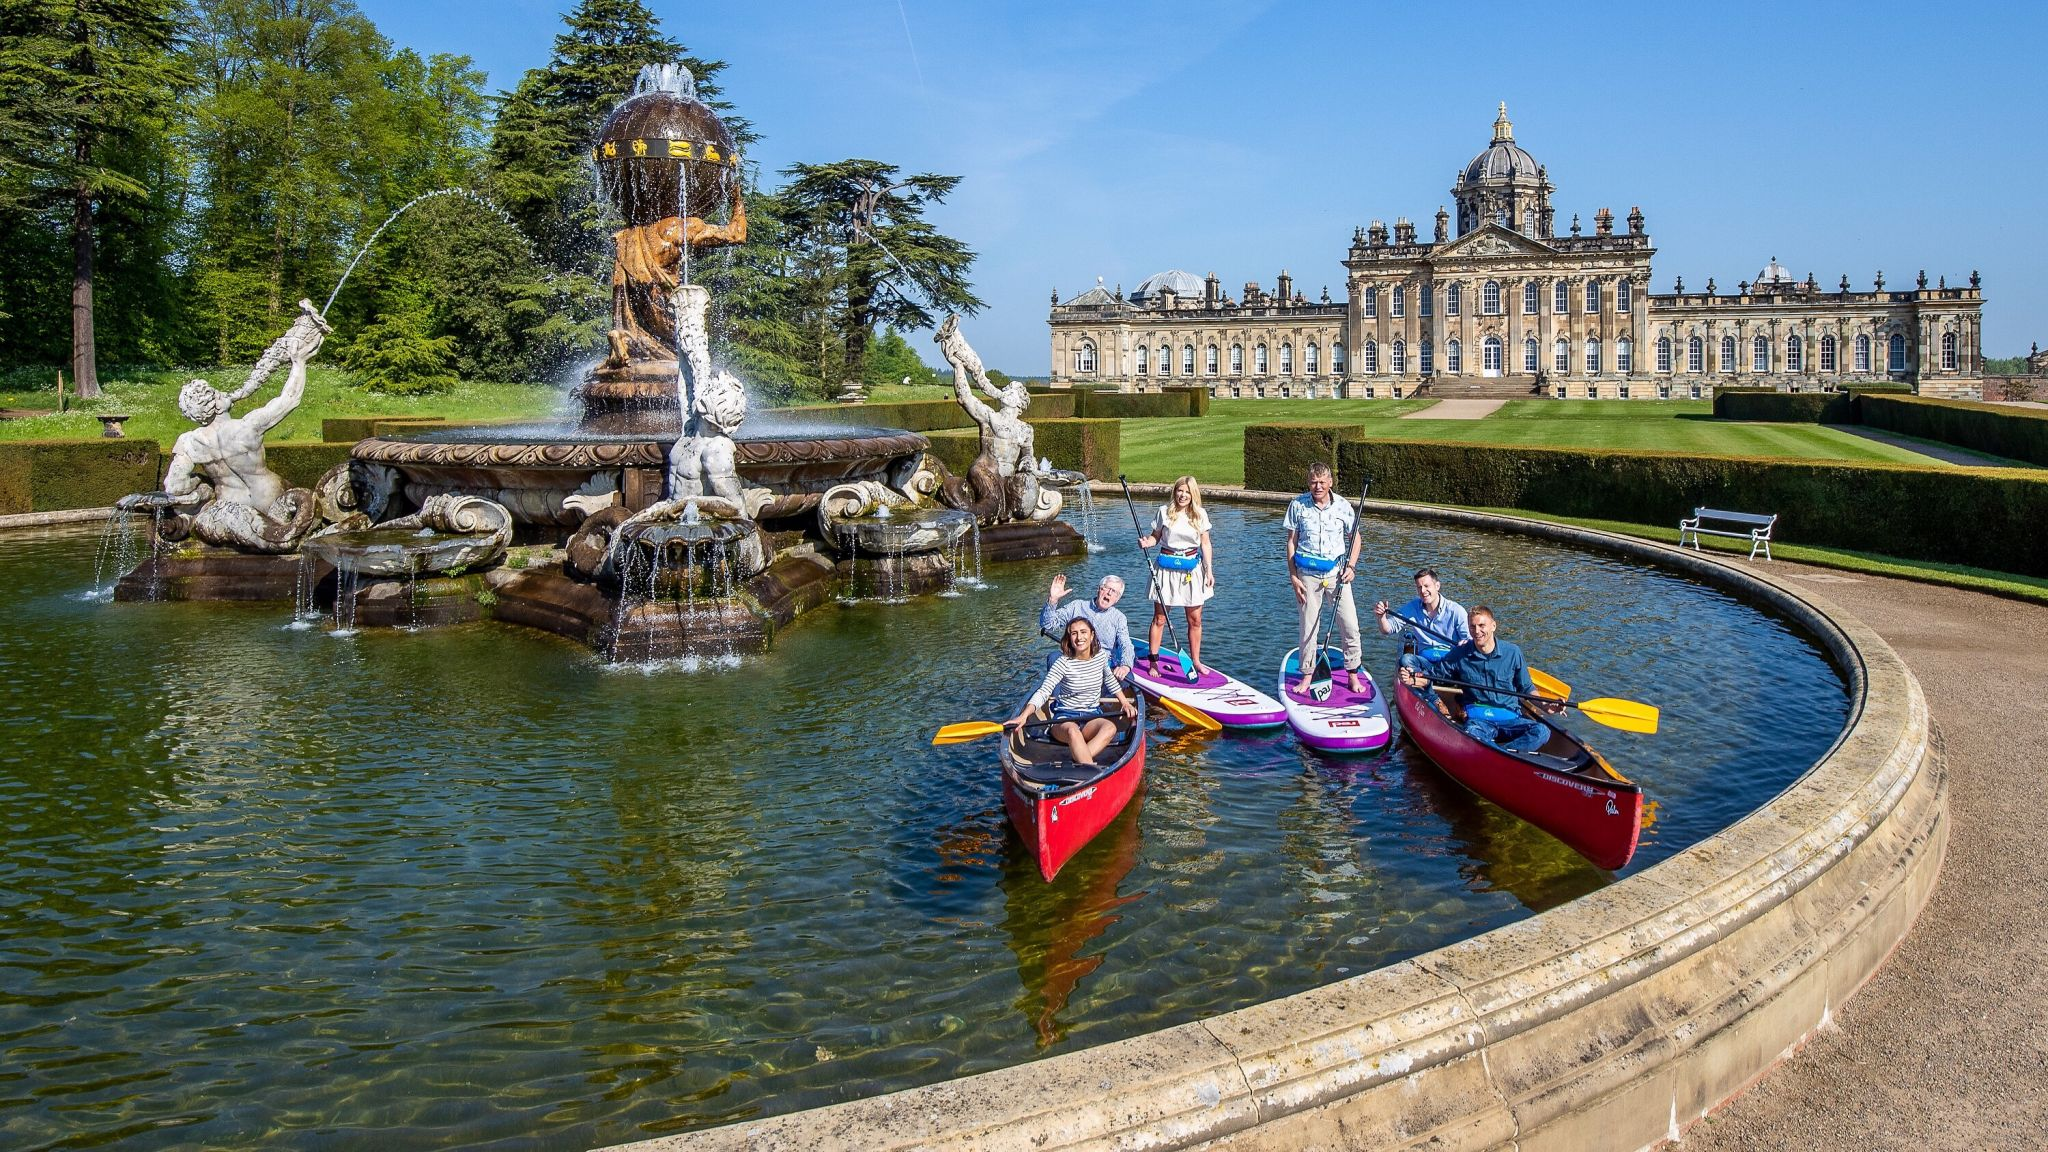 Countryfile presenters in a canoe in a fountain